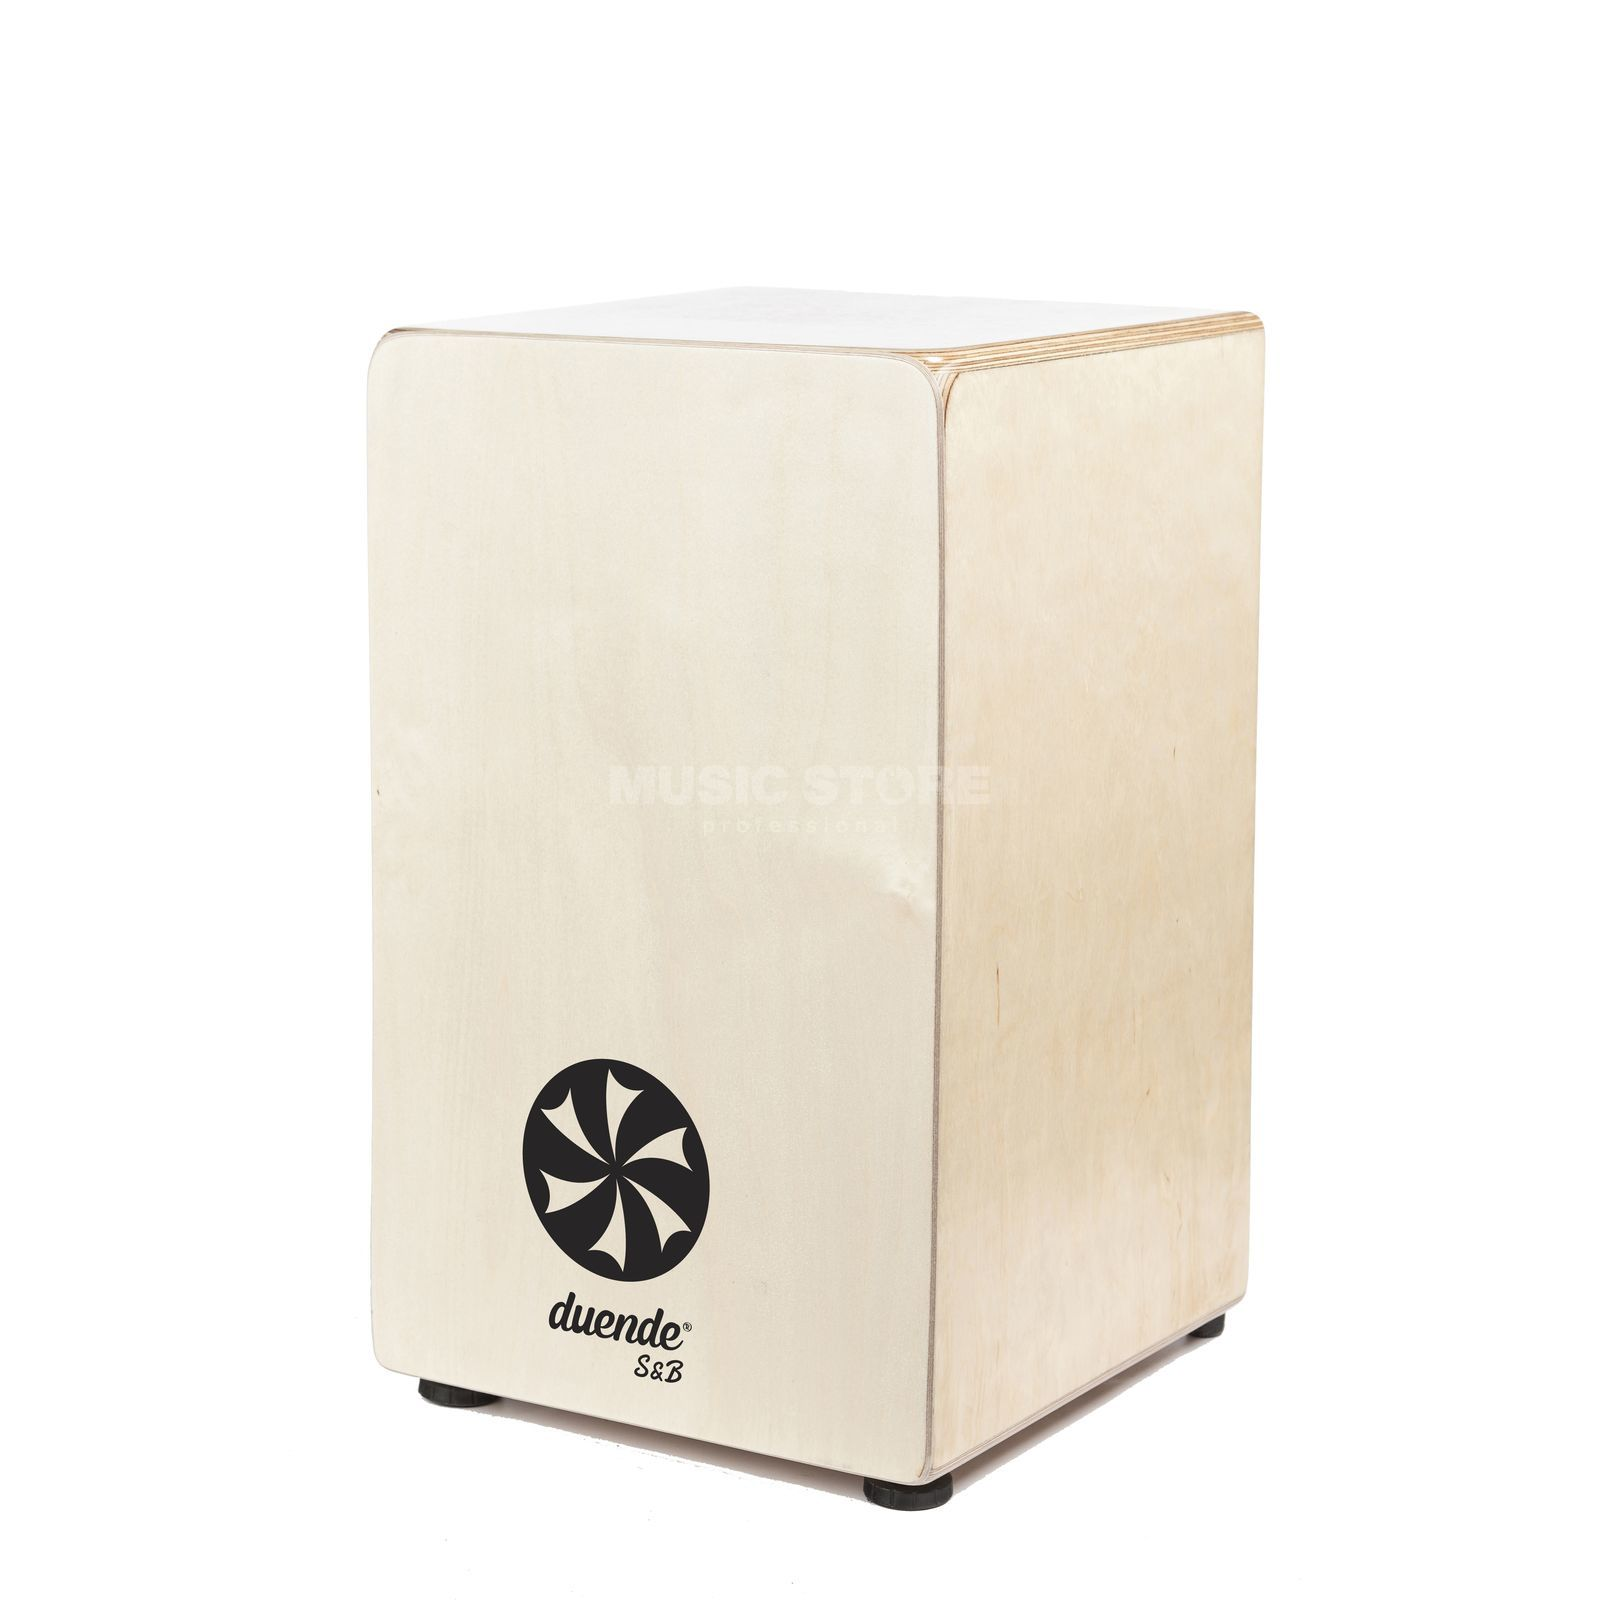 Duende Cajon Swing and Brushes, Overstock Produktbild